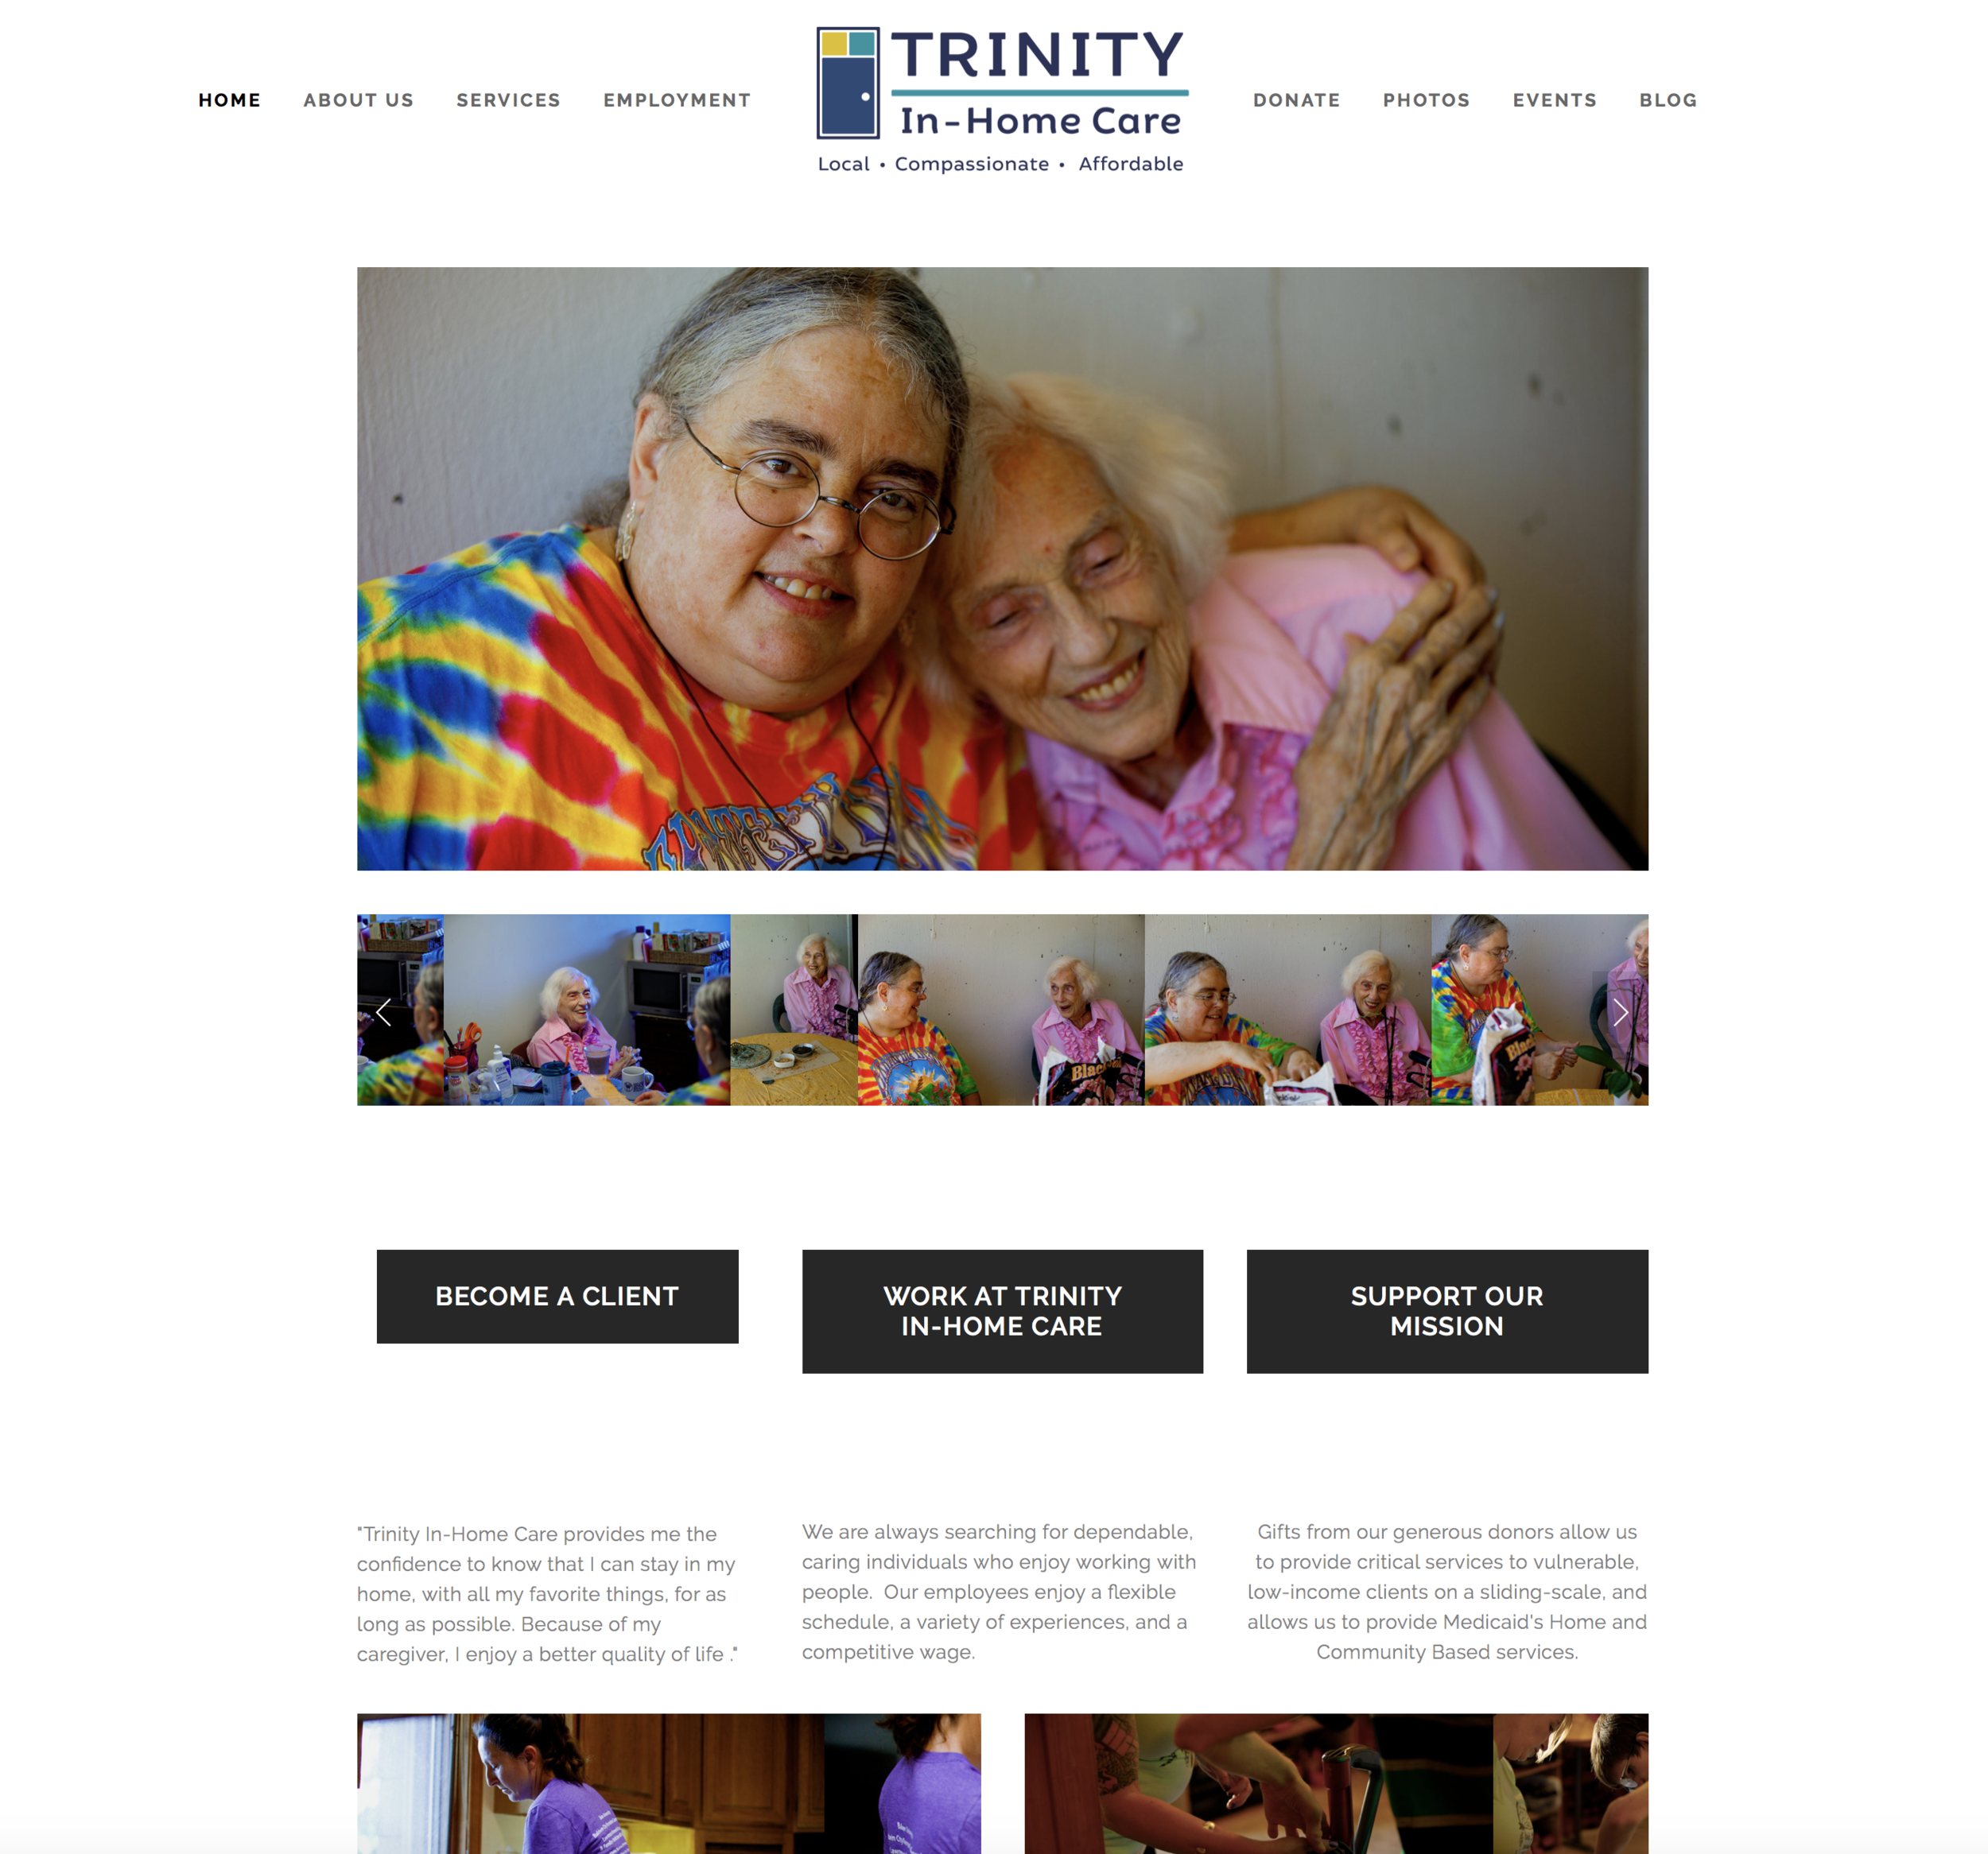 The website update is finally done! - After refreshing the logos/branding and having professional photos of our clients and staff taken, the website finally got some attention.